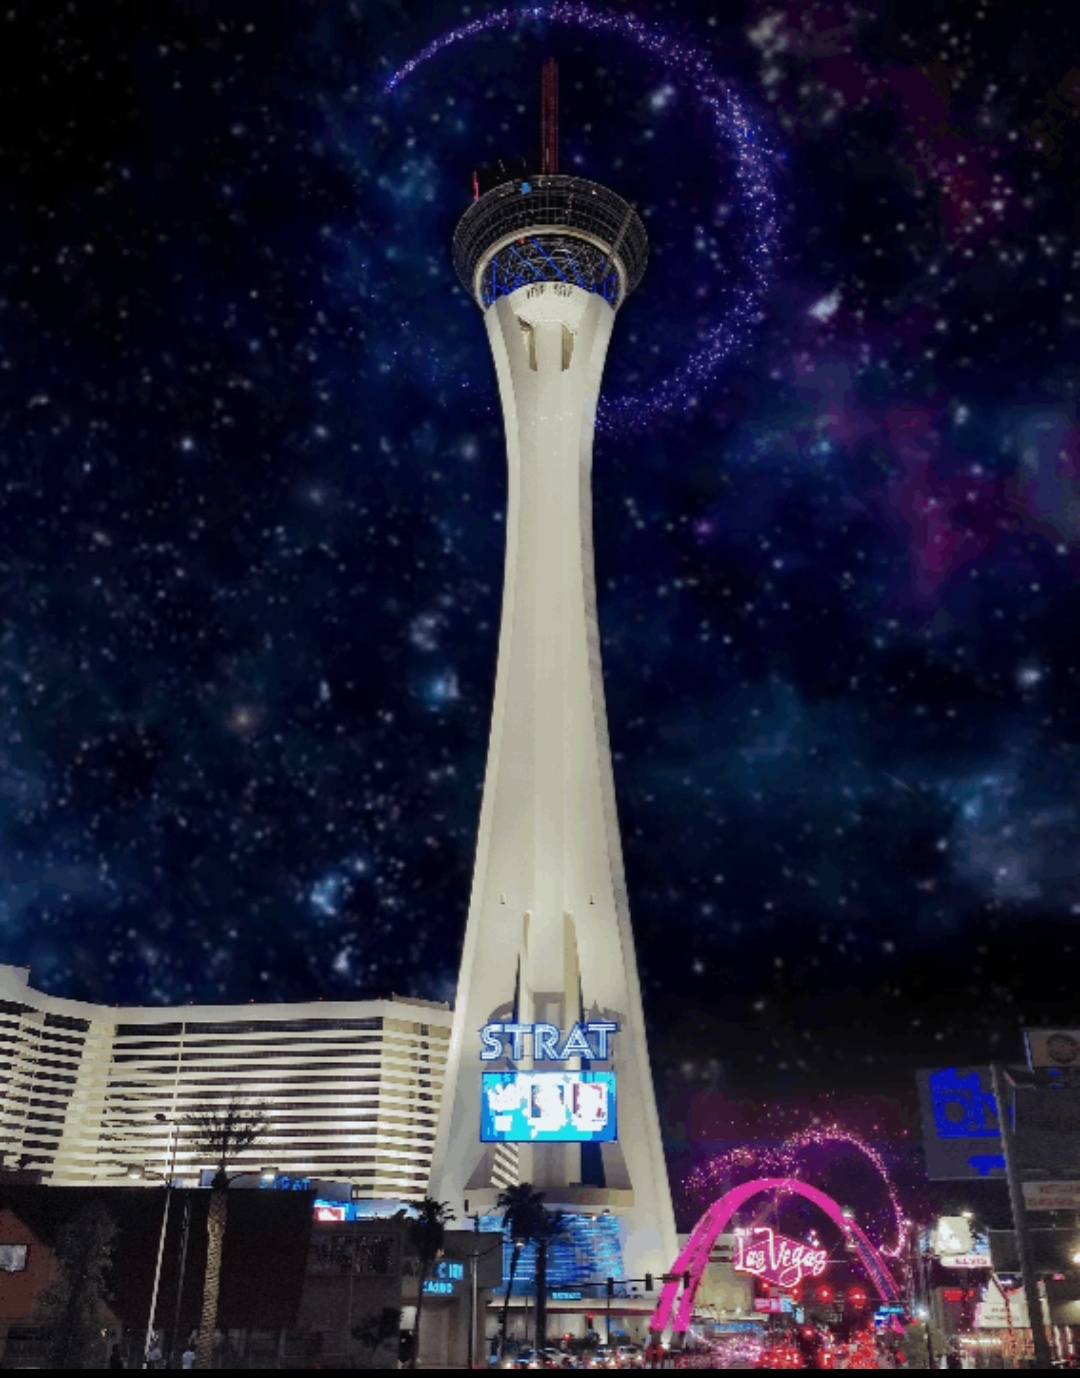 The Stratosphere In Our Atmosphere